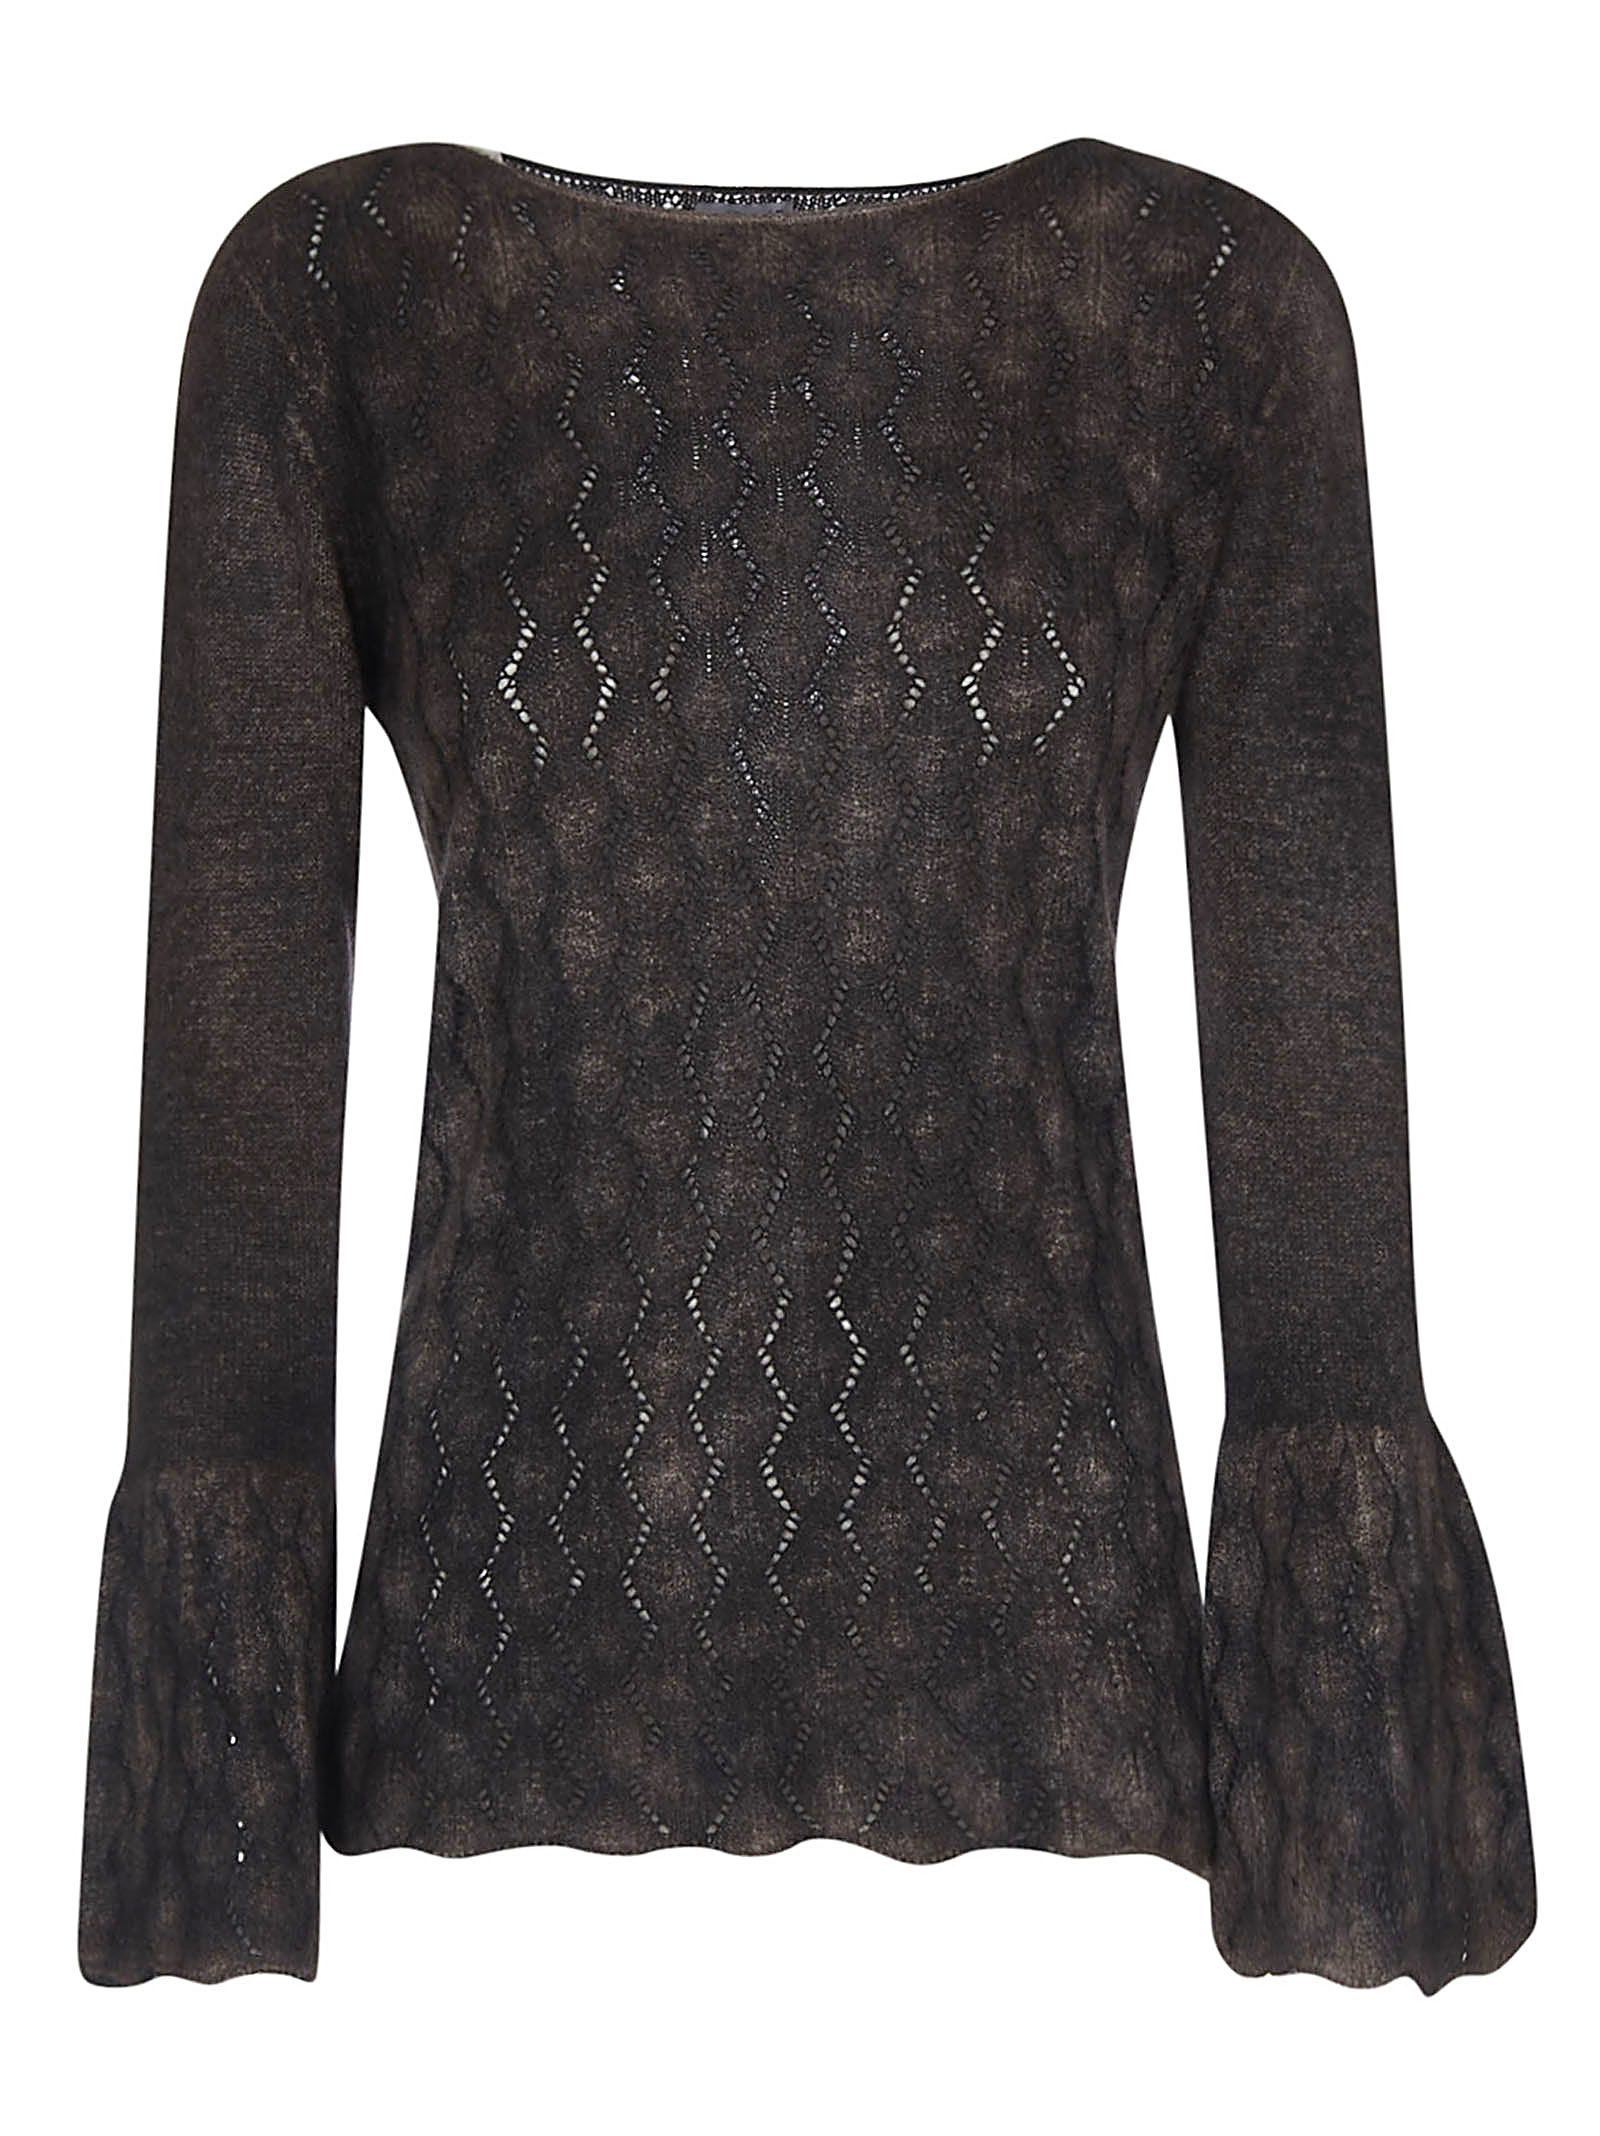 F CASHMERE F Cashmere Sequin Flared Top in Nut